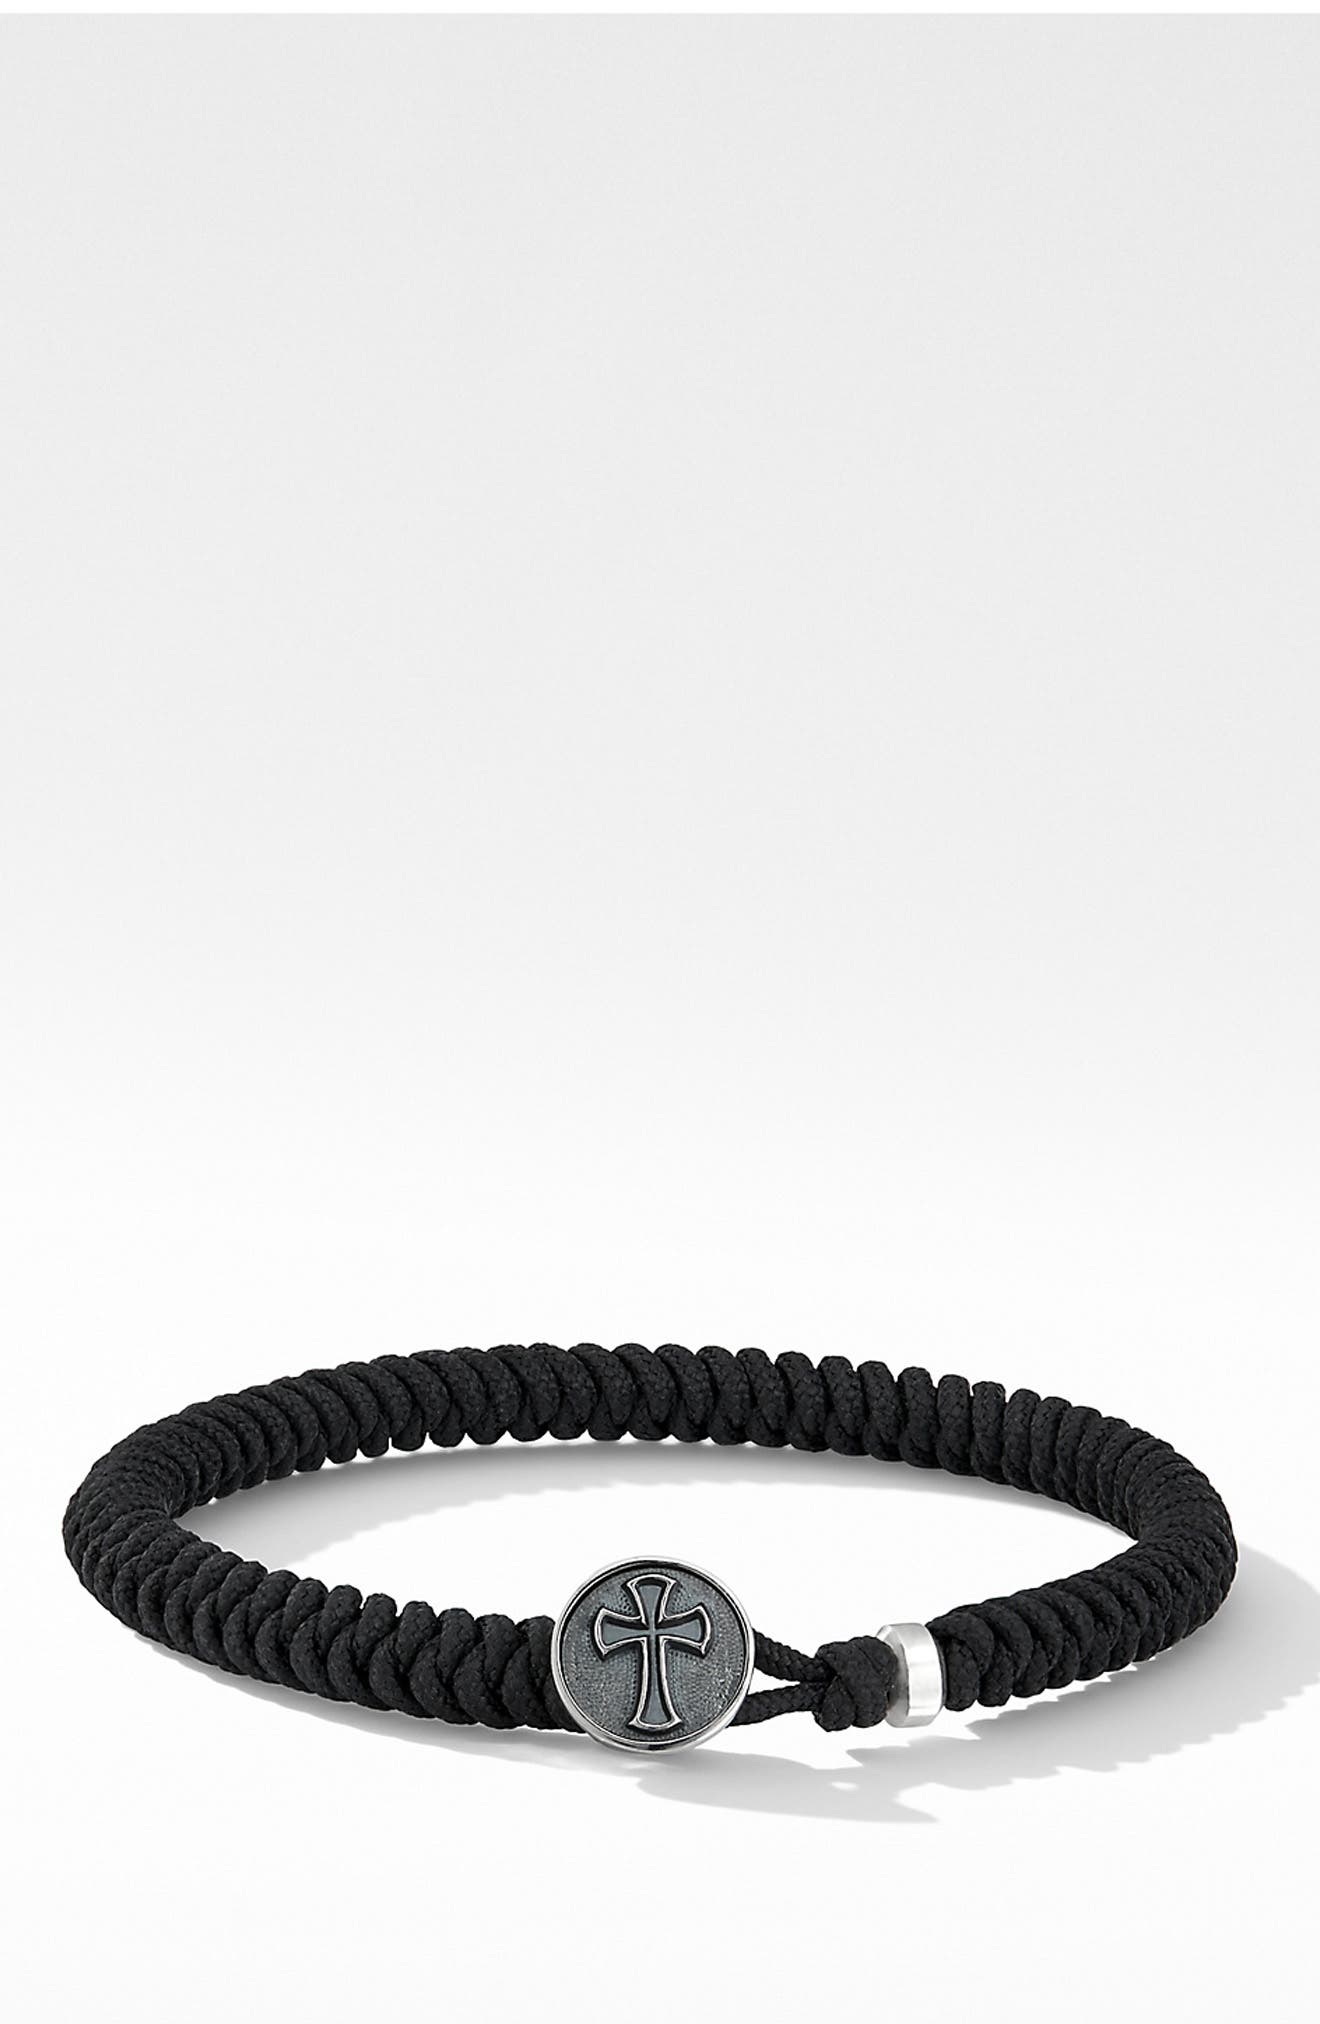 DAVID YURMAN Woven Cross Bracelet, Main, color, BLACK